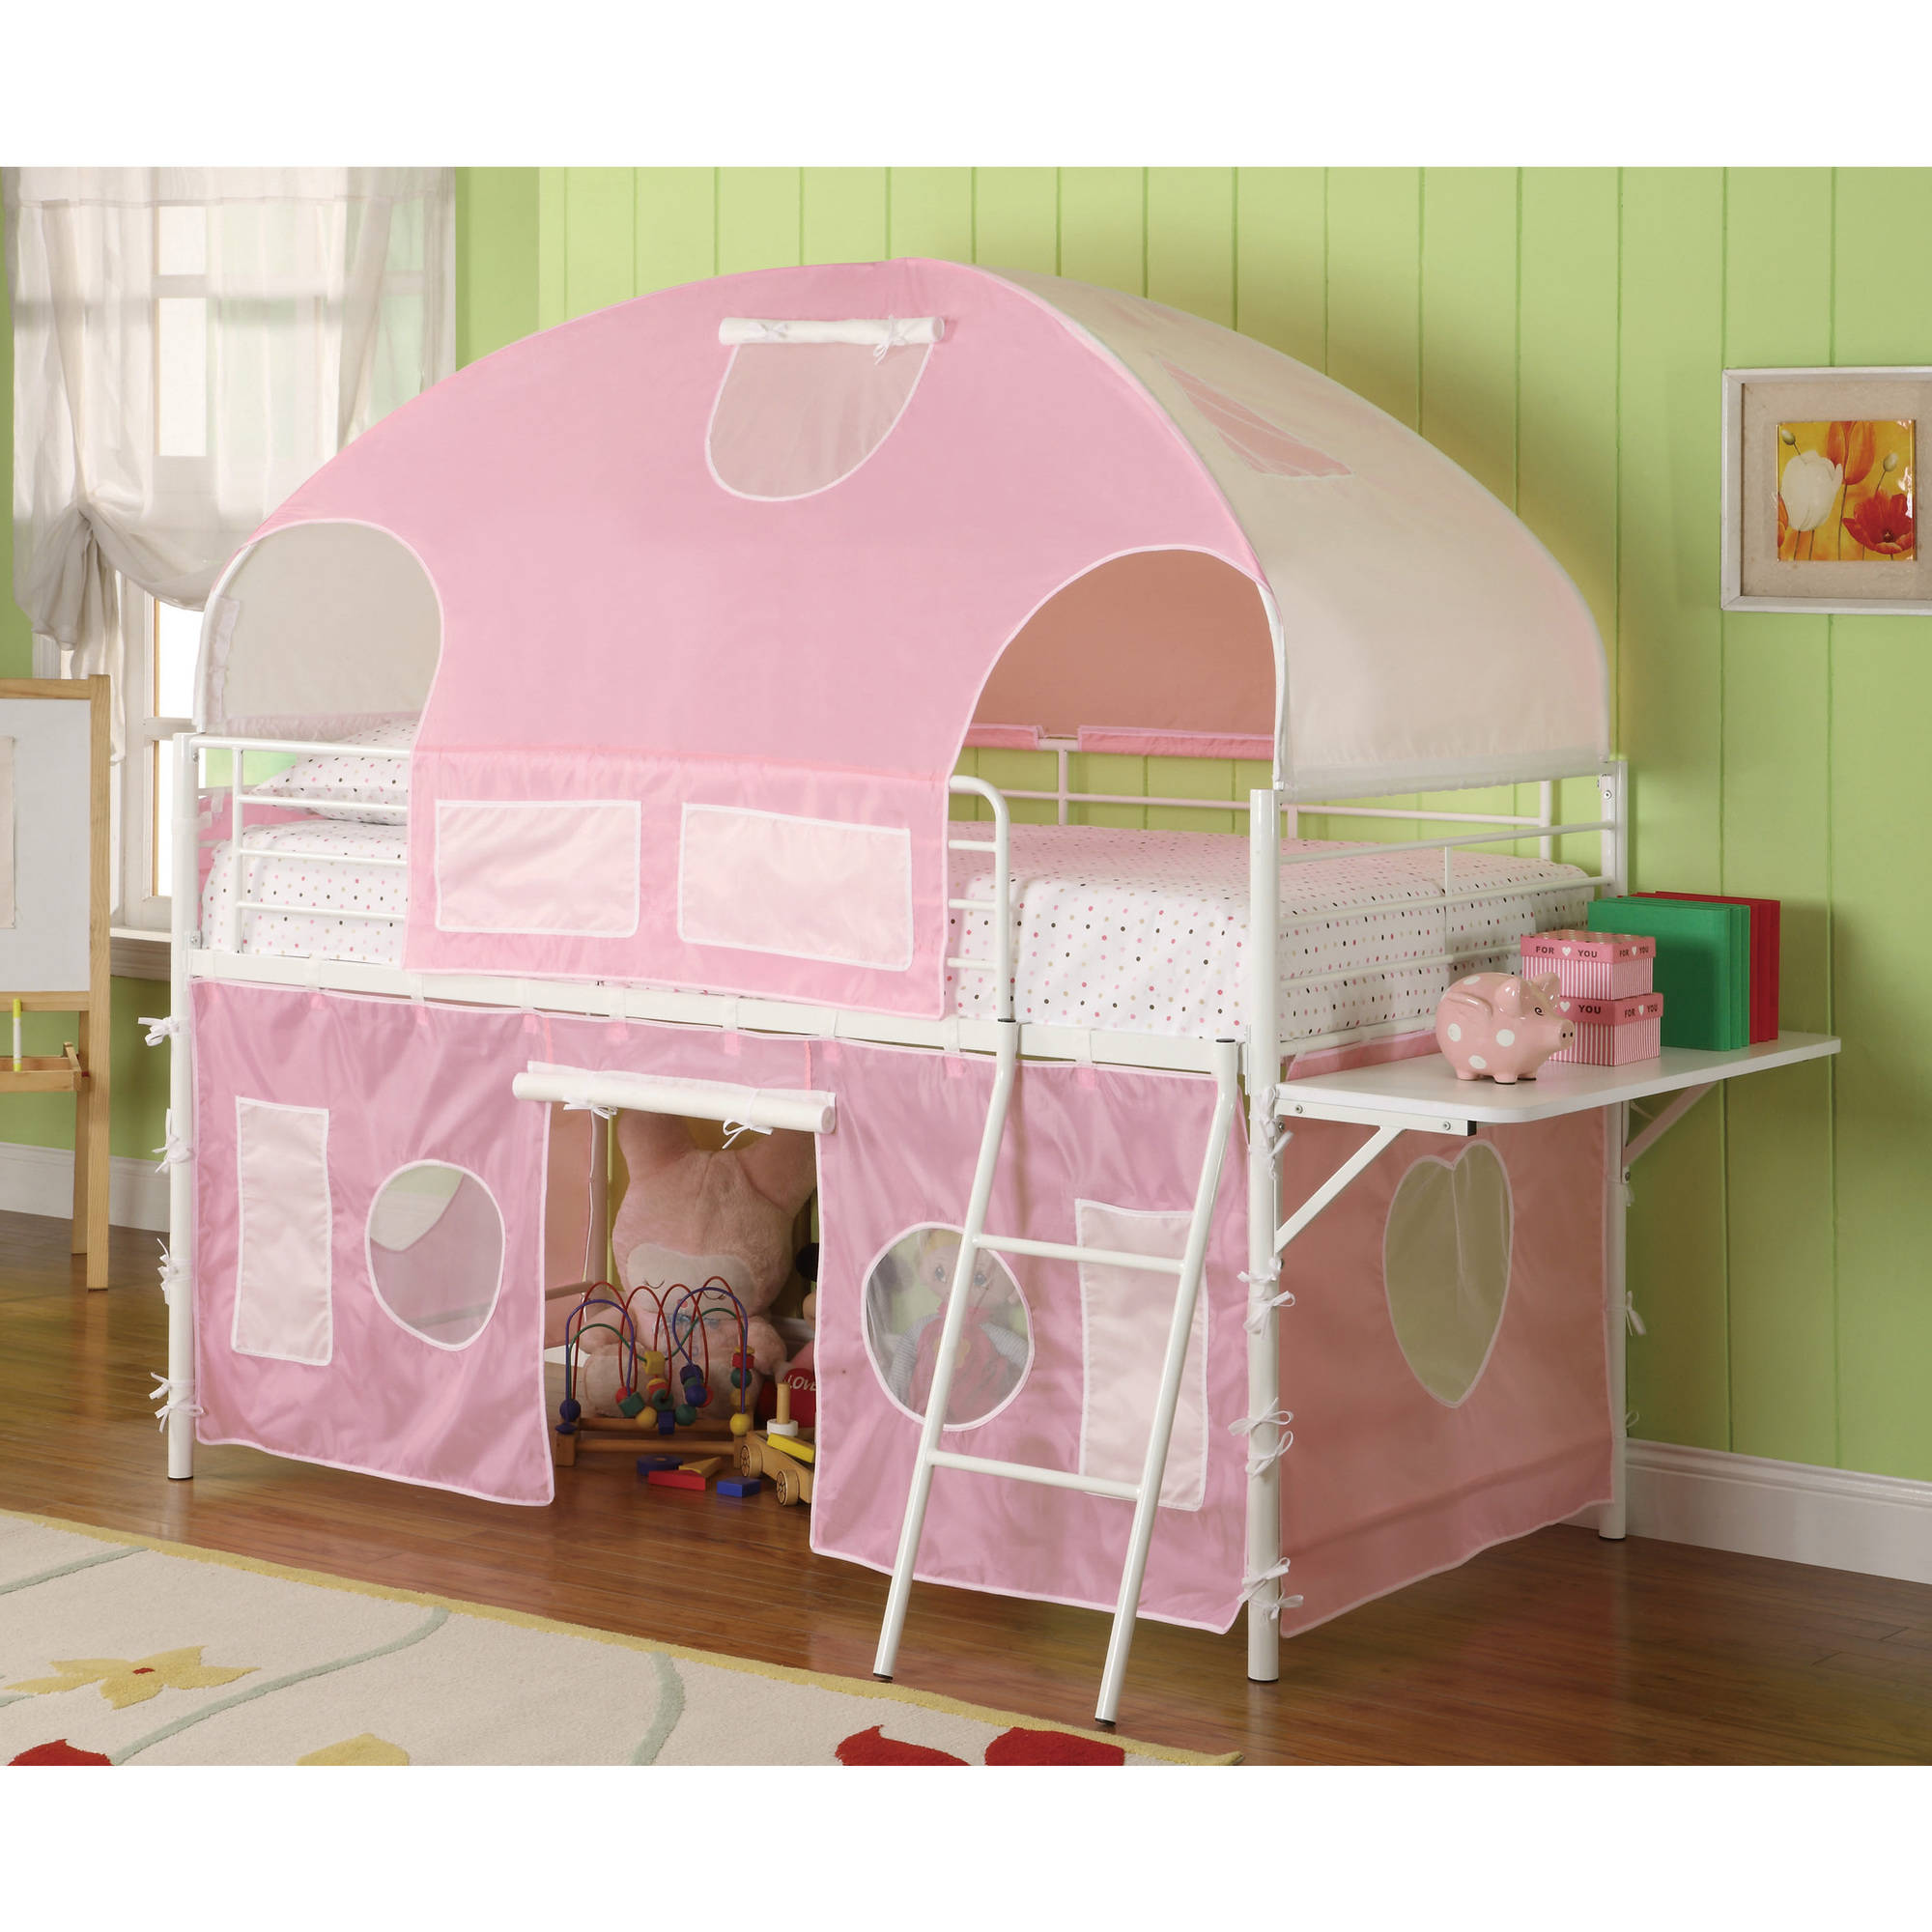 Coaster Company Sweetheart Tent Bed, Glossy White Frame